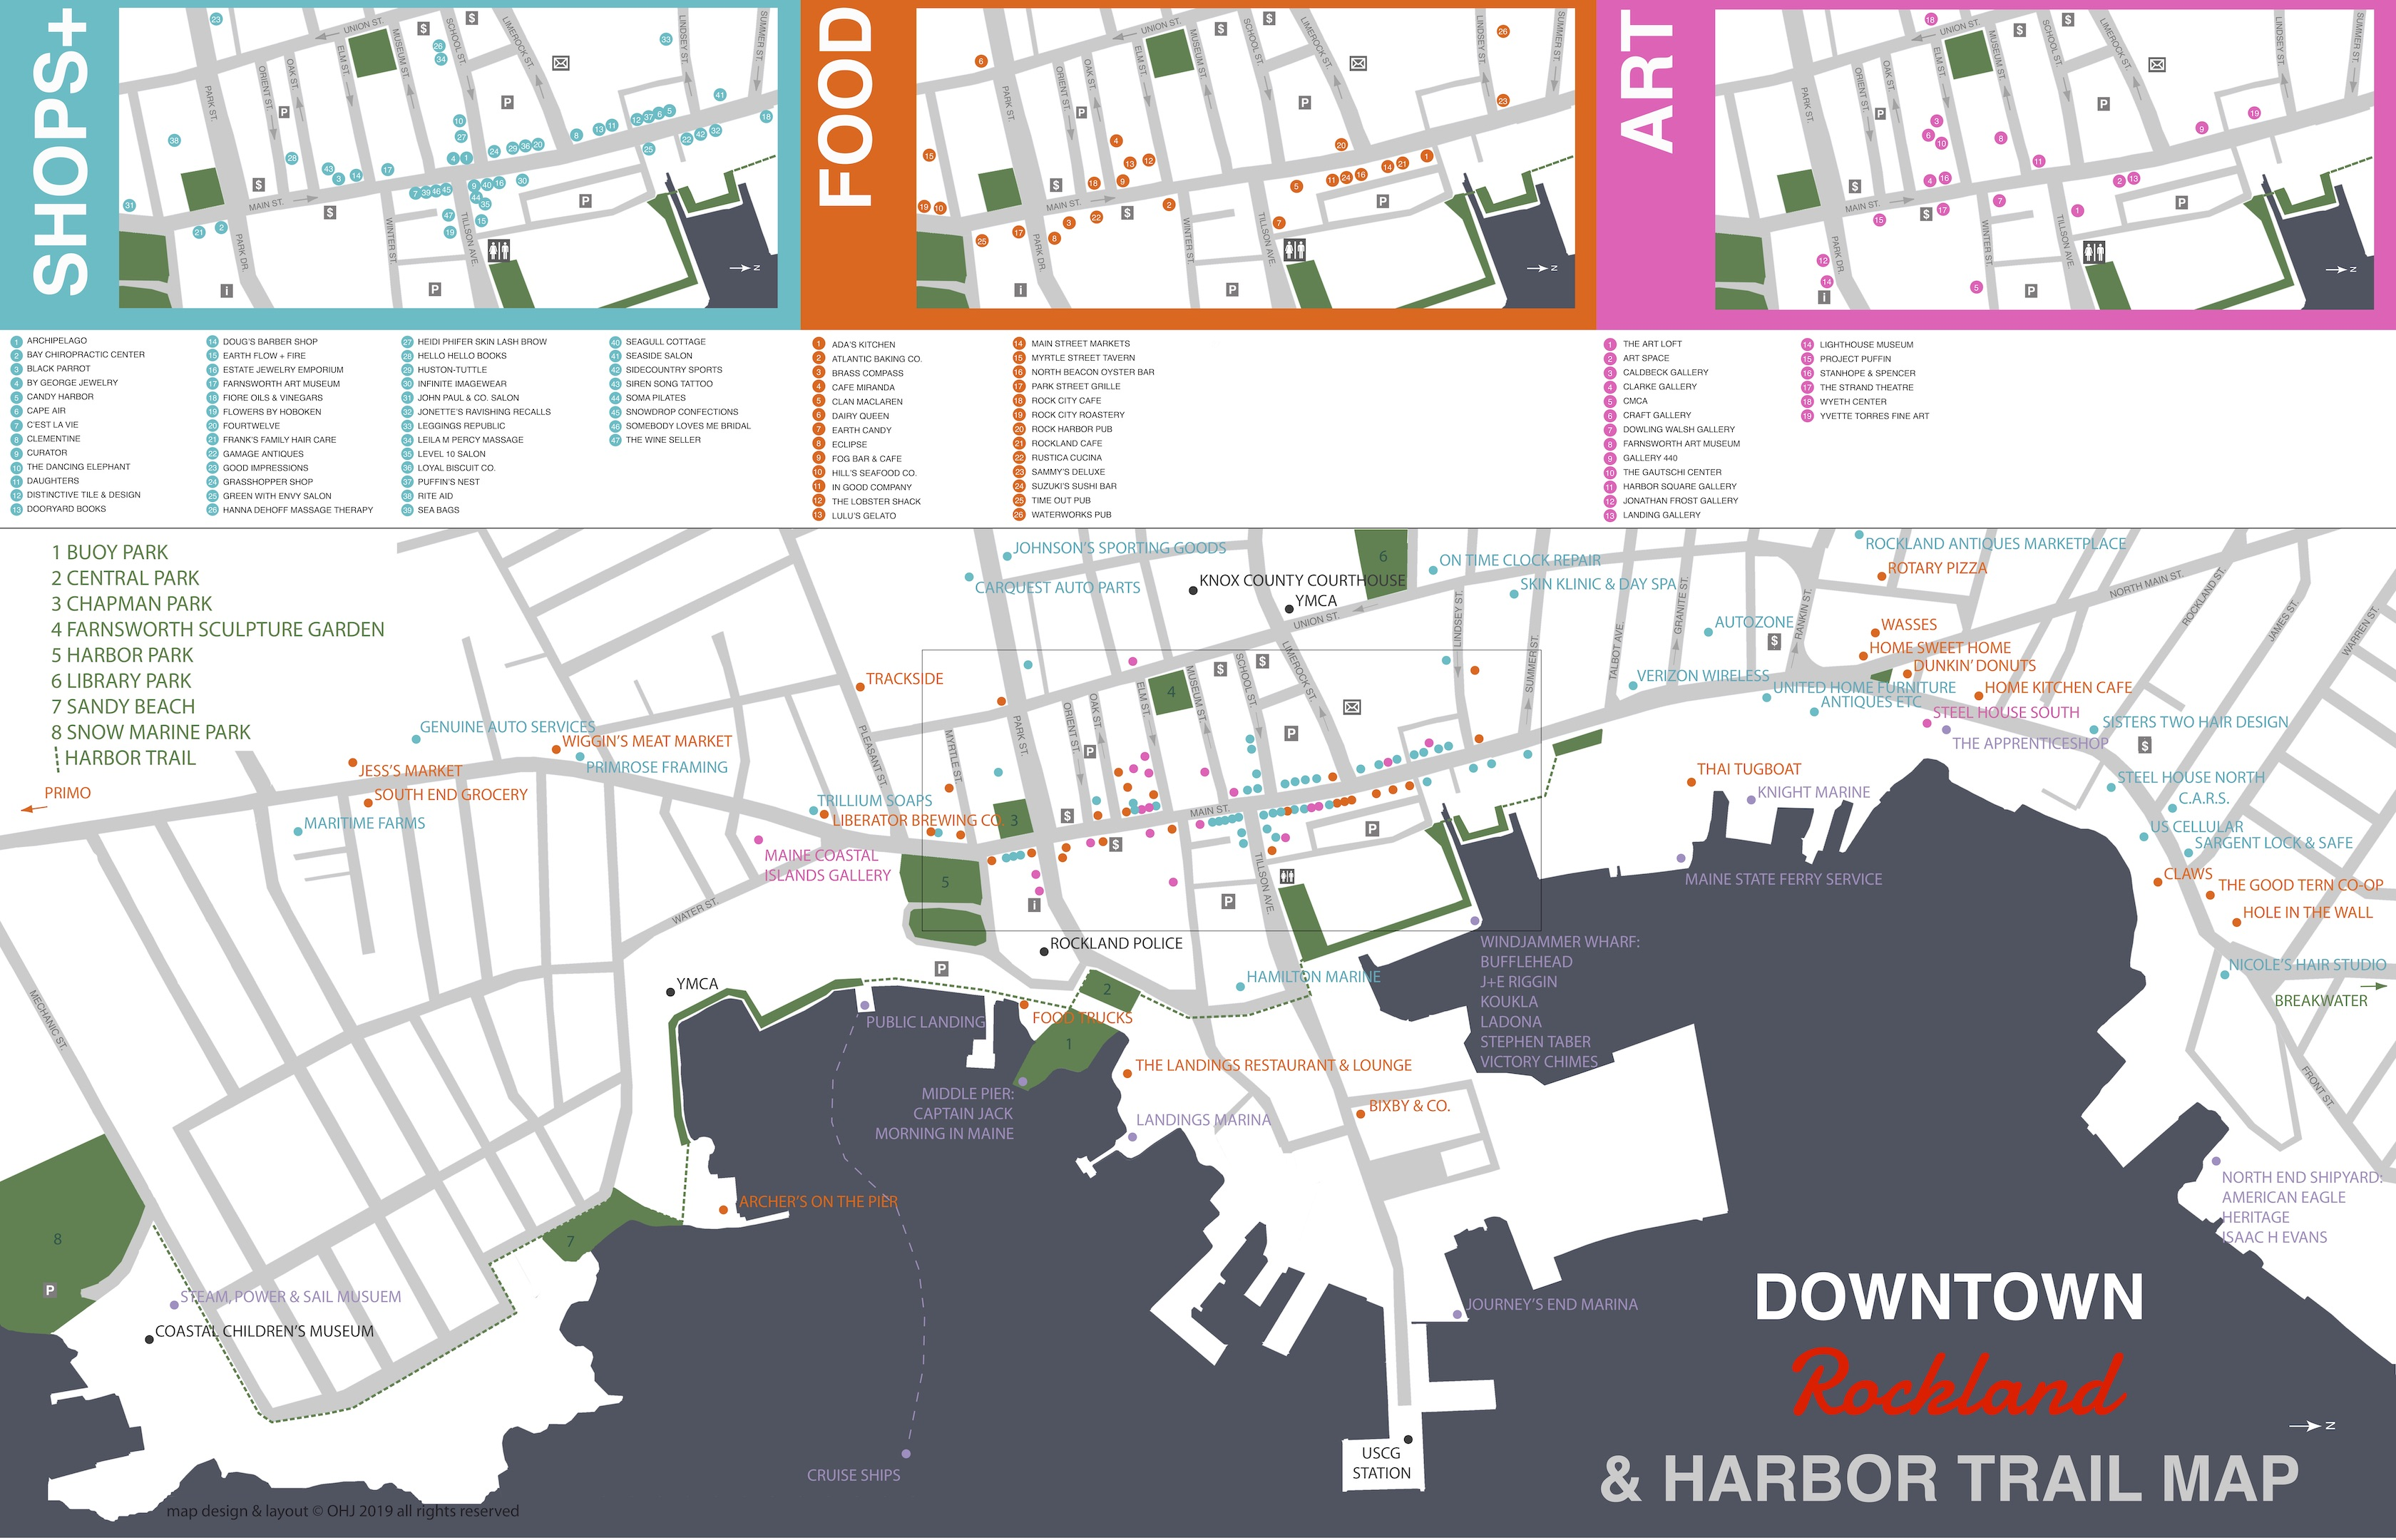 Walking Maps – The City of Rockland, Maine on i-290 map, tours on a map, quest map, transit map, biking map, tourist map, thinking map, walk map, sports map, bike map, shopping map, amtrak train map, fall color peak map, you are here map, bridge map, bus map, tv tower locations map, train ride map, beach map, port washington long island map,